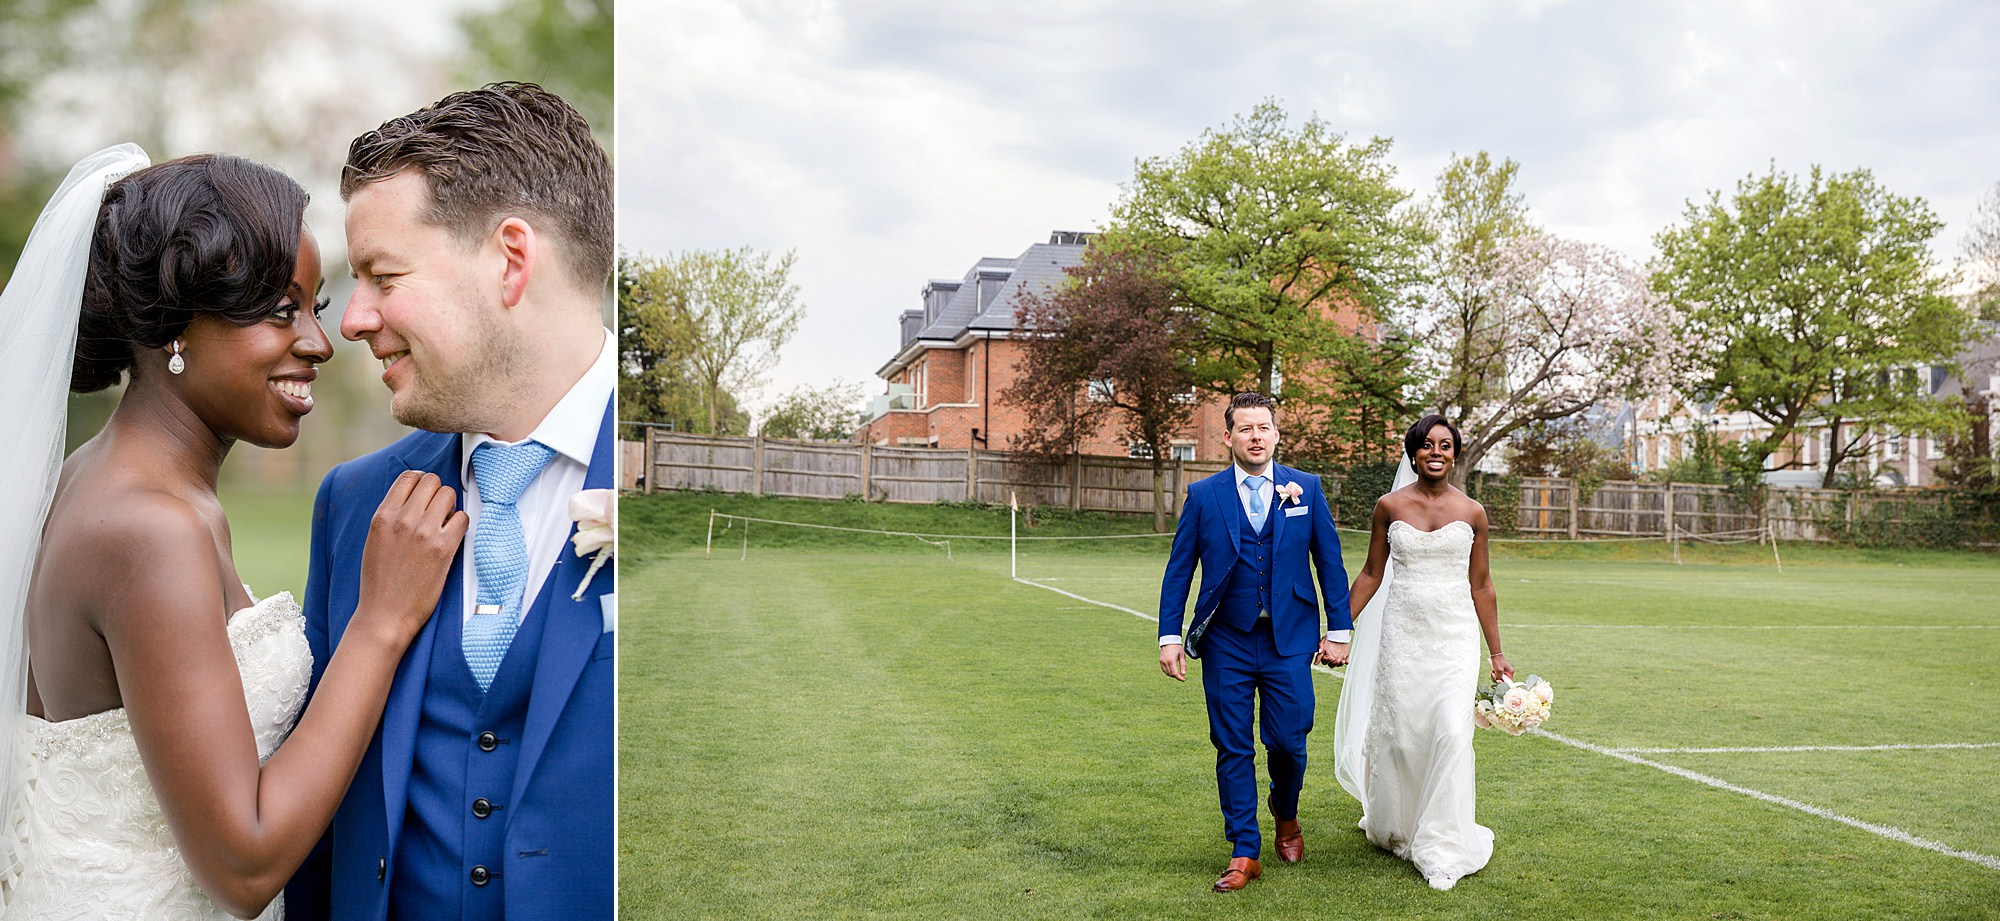 Bank of England Sports Centre wedding bride and groom walk across field